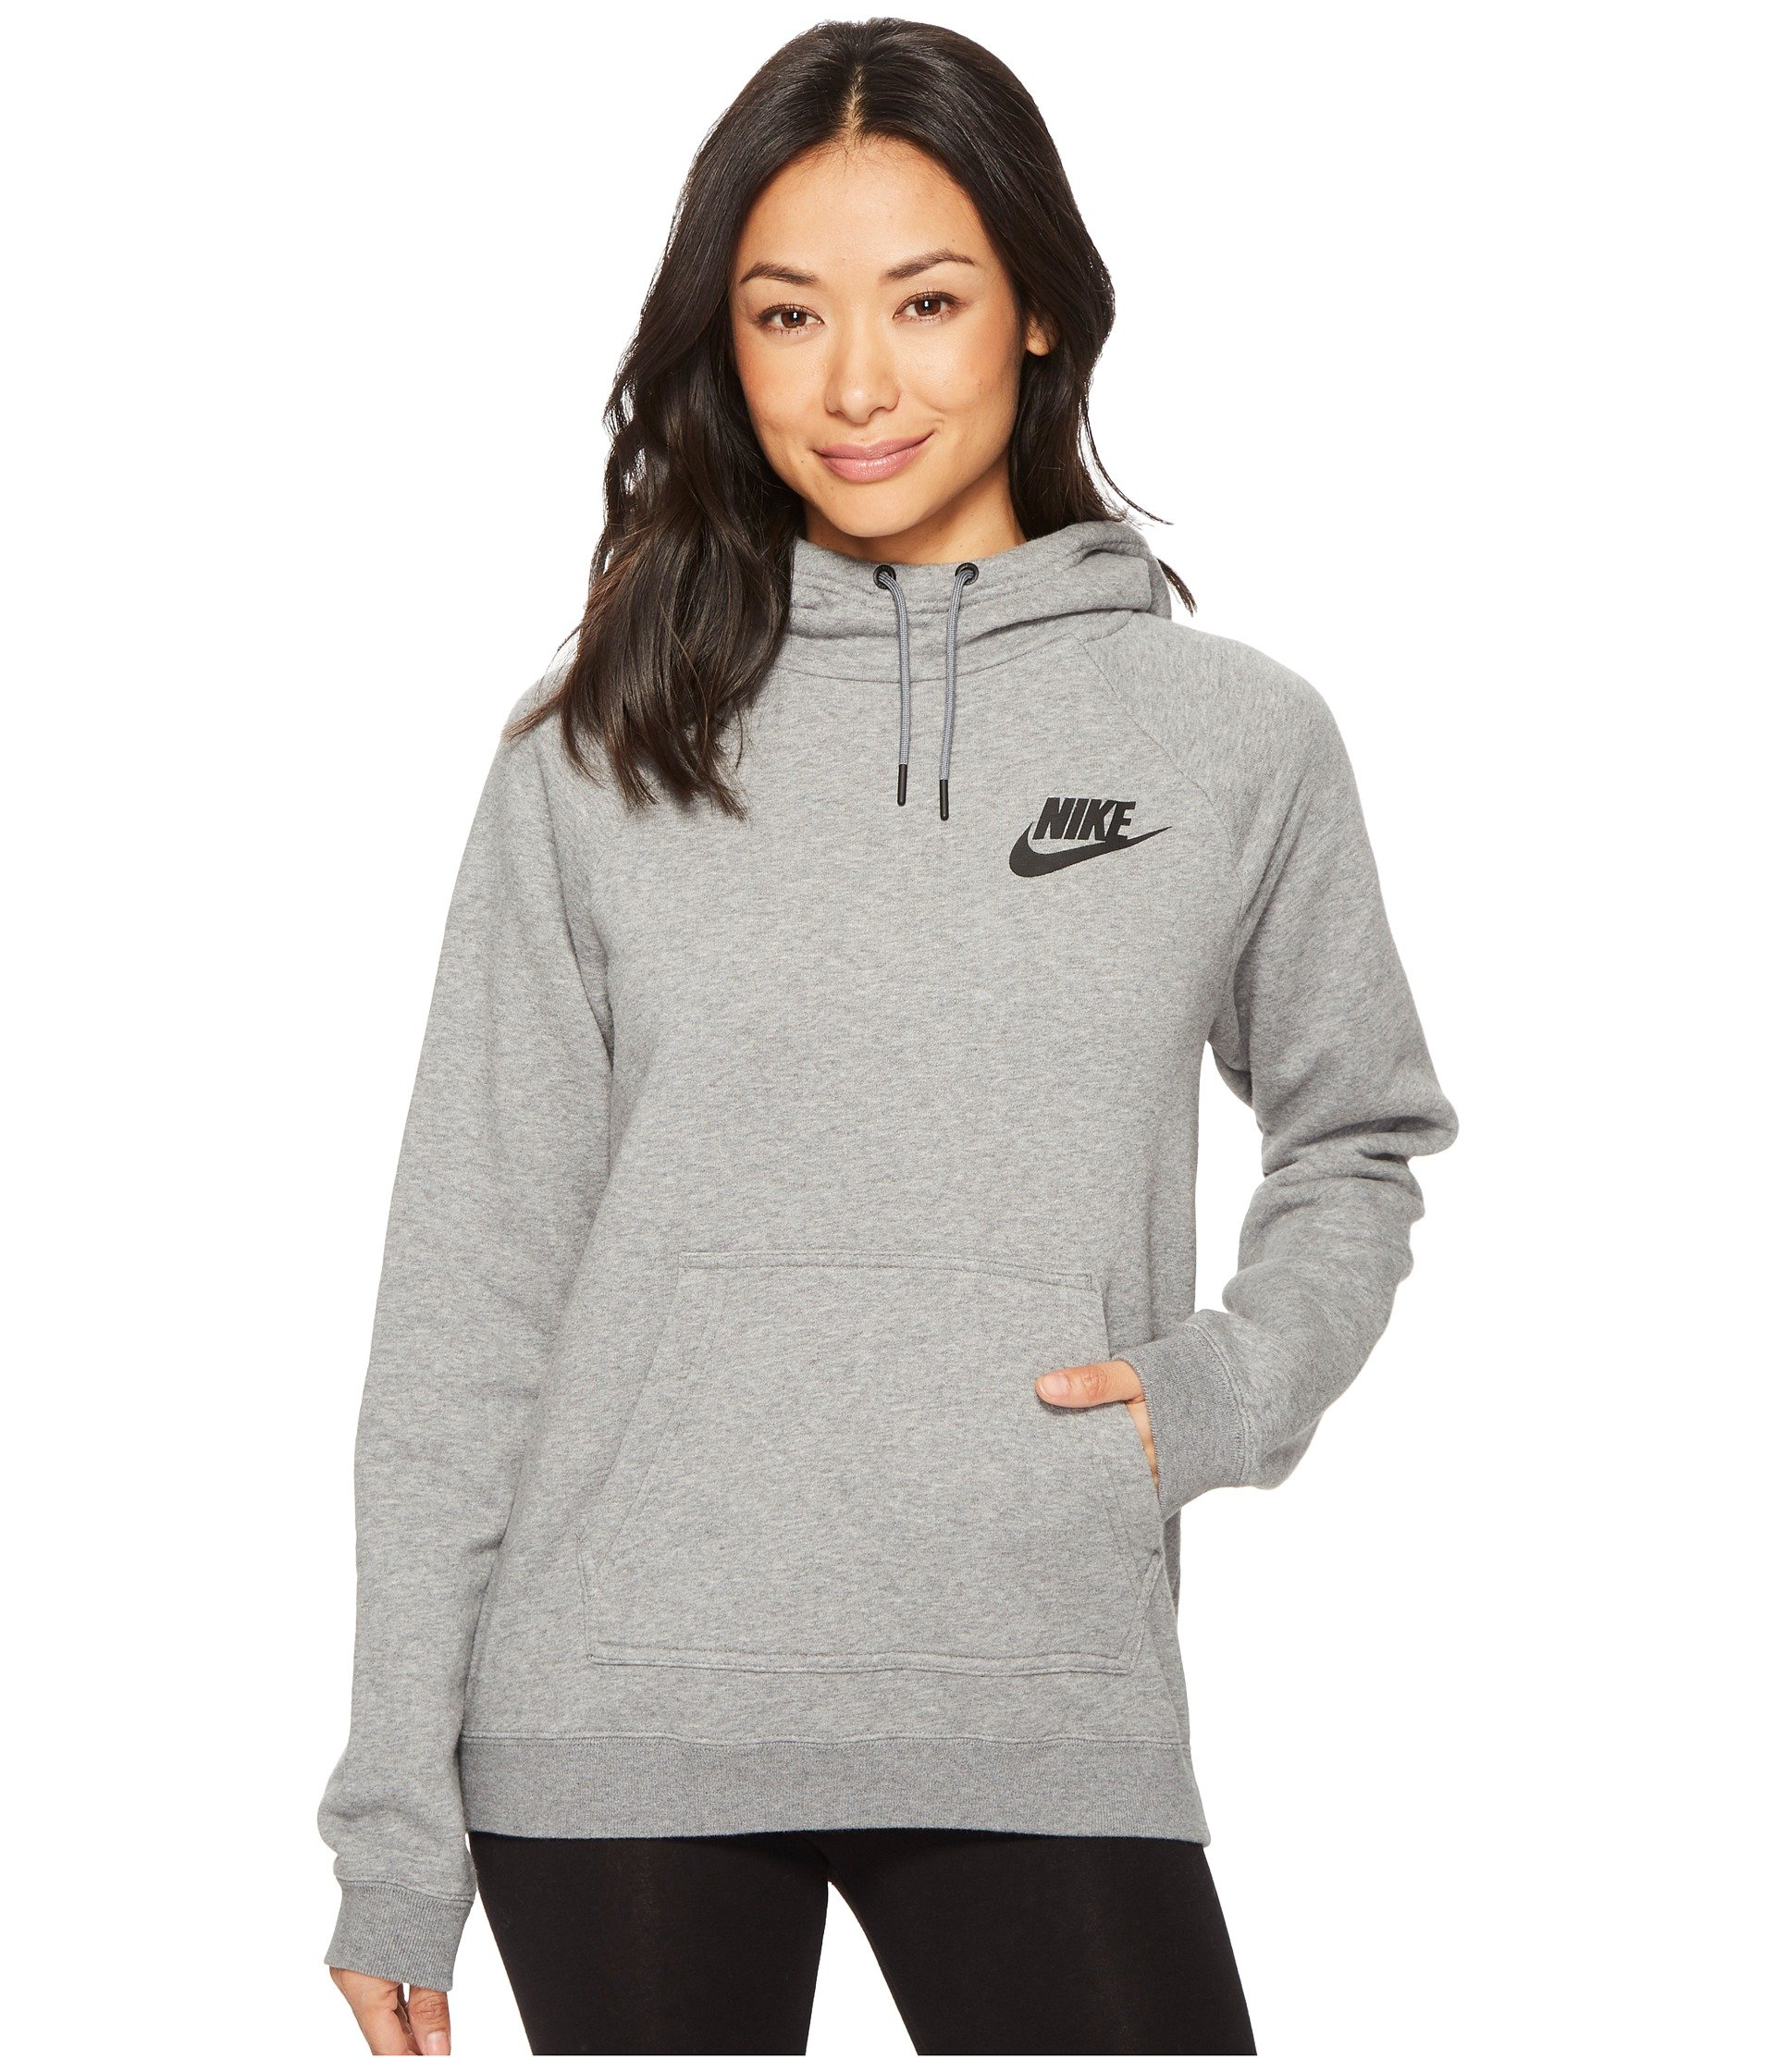 6dec6f50d820 Galleon - NIKE Women s Sportswear Rally Pullover Hoodie Carbon Heather Cool  Grey L